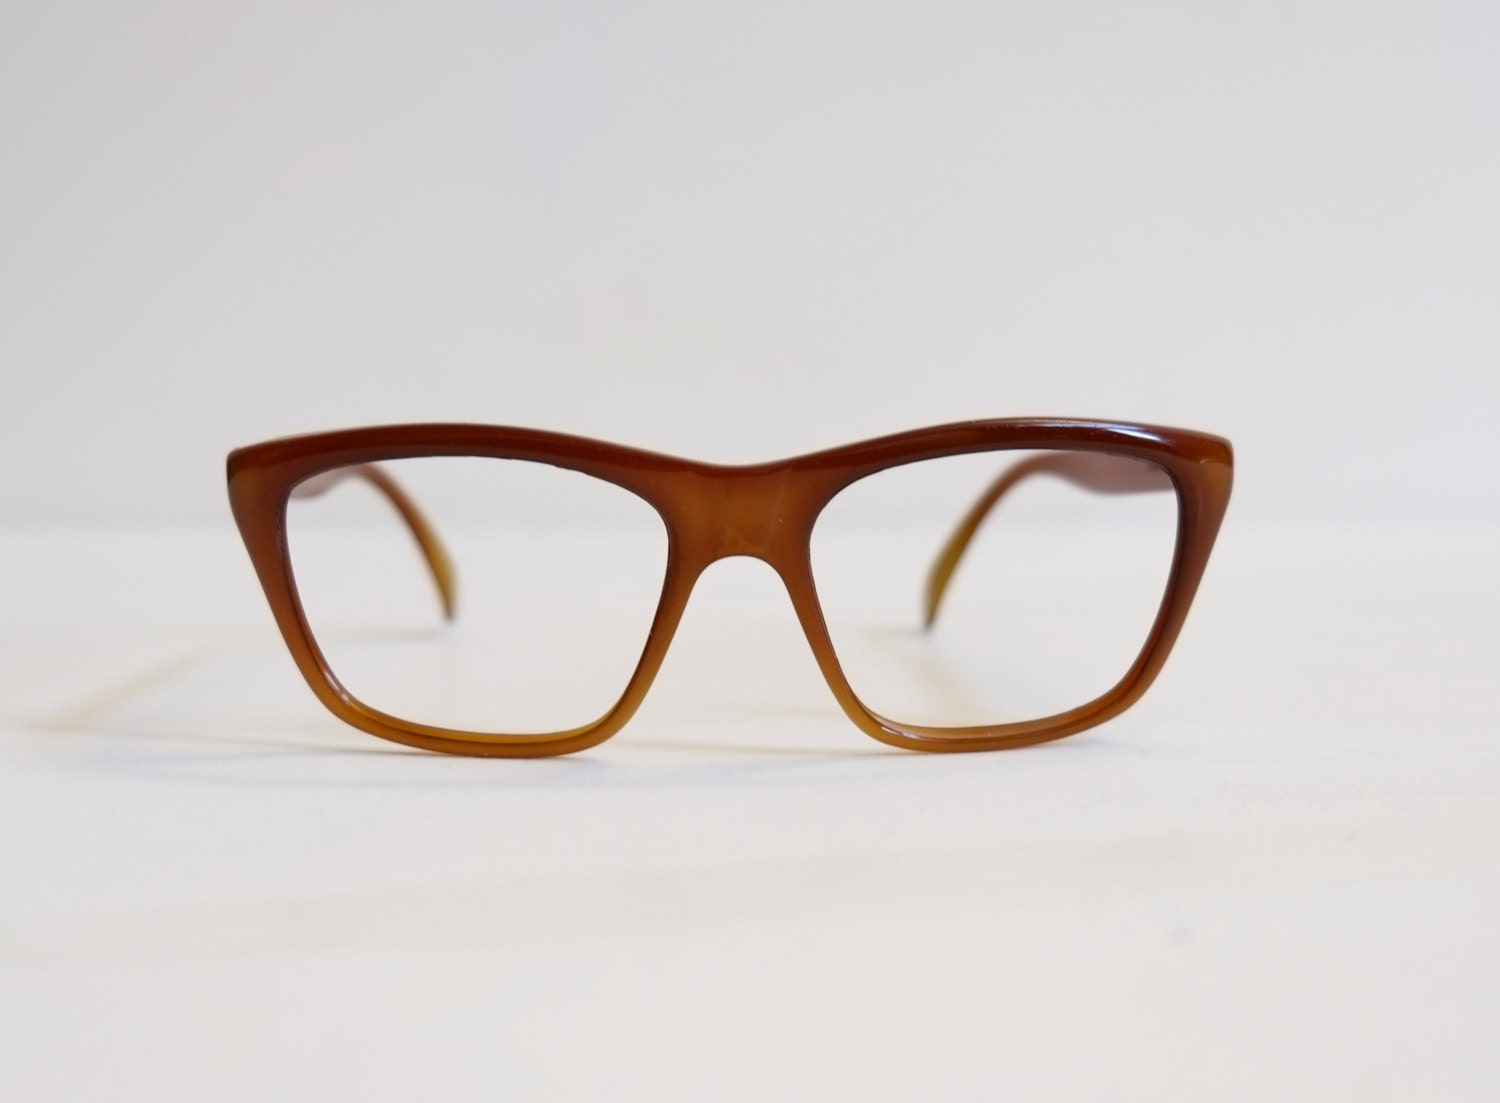 Frame Of Glasses In French : Suncloud France 1980s Caramel Brown French Eyeglasses ...